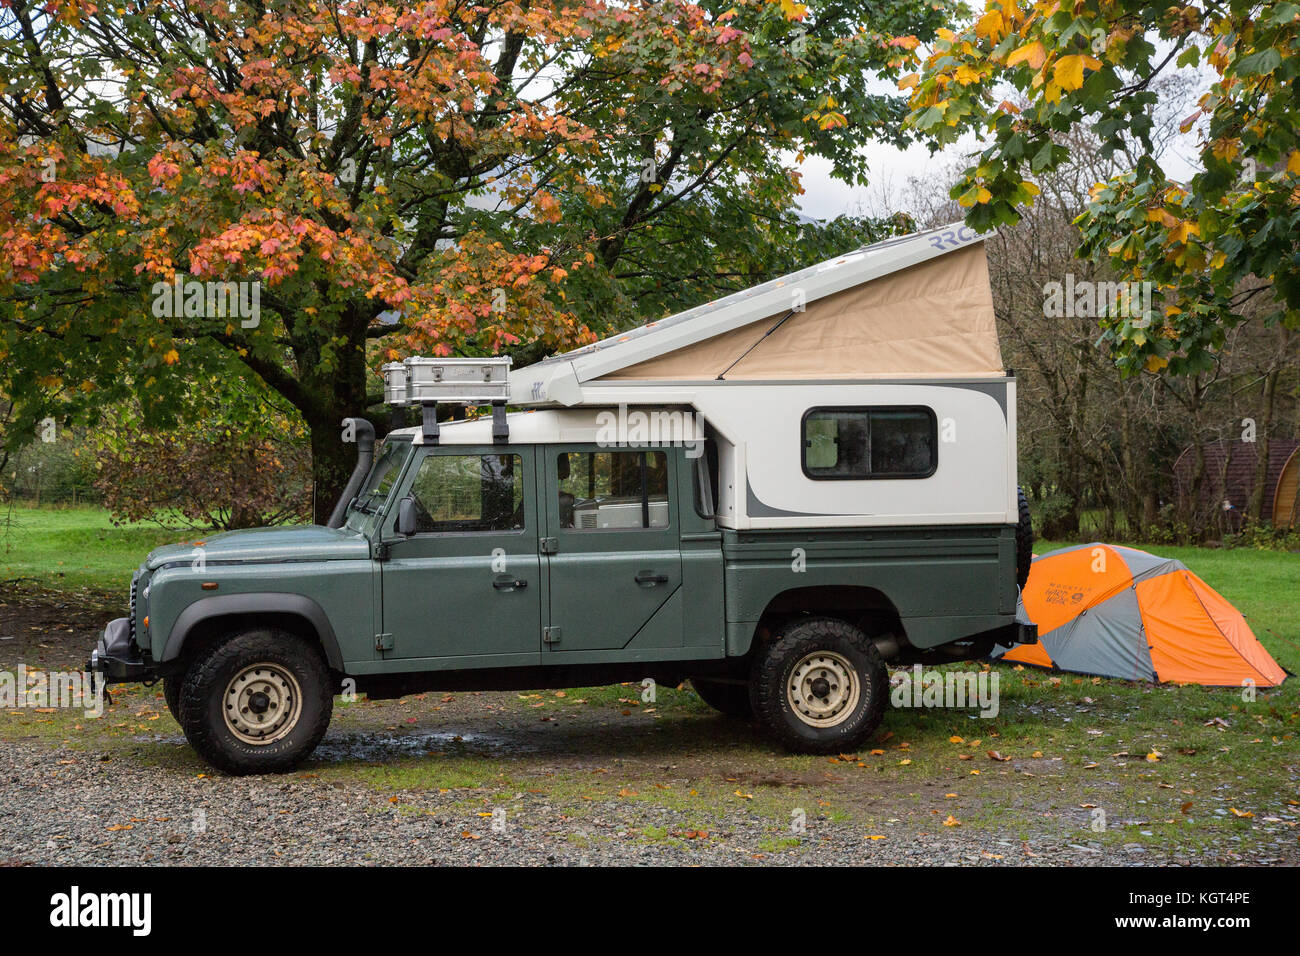 Land Rover 4x4 Camper Van Conversion Stock Photo Alamy